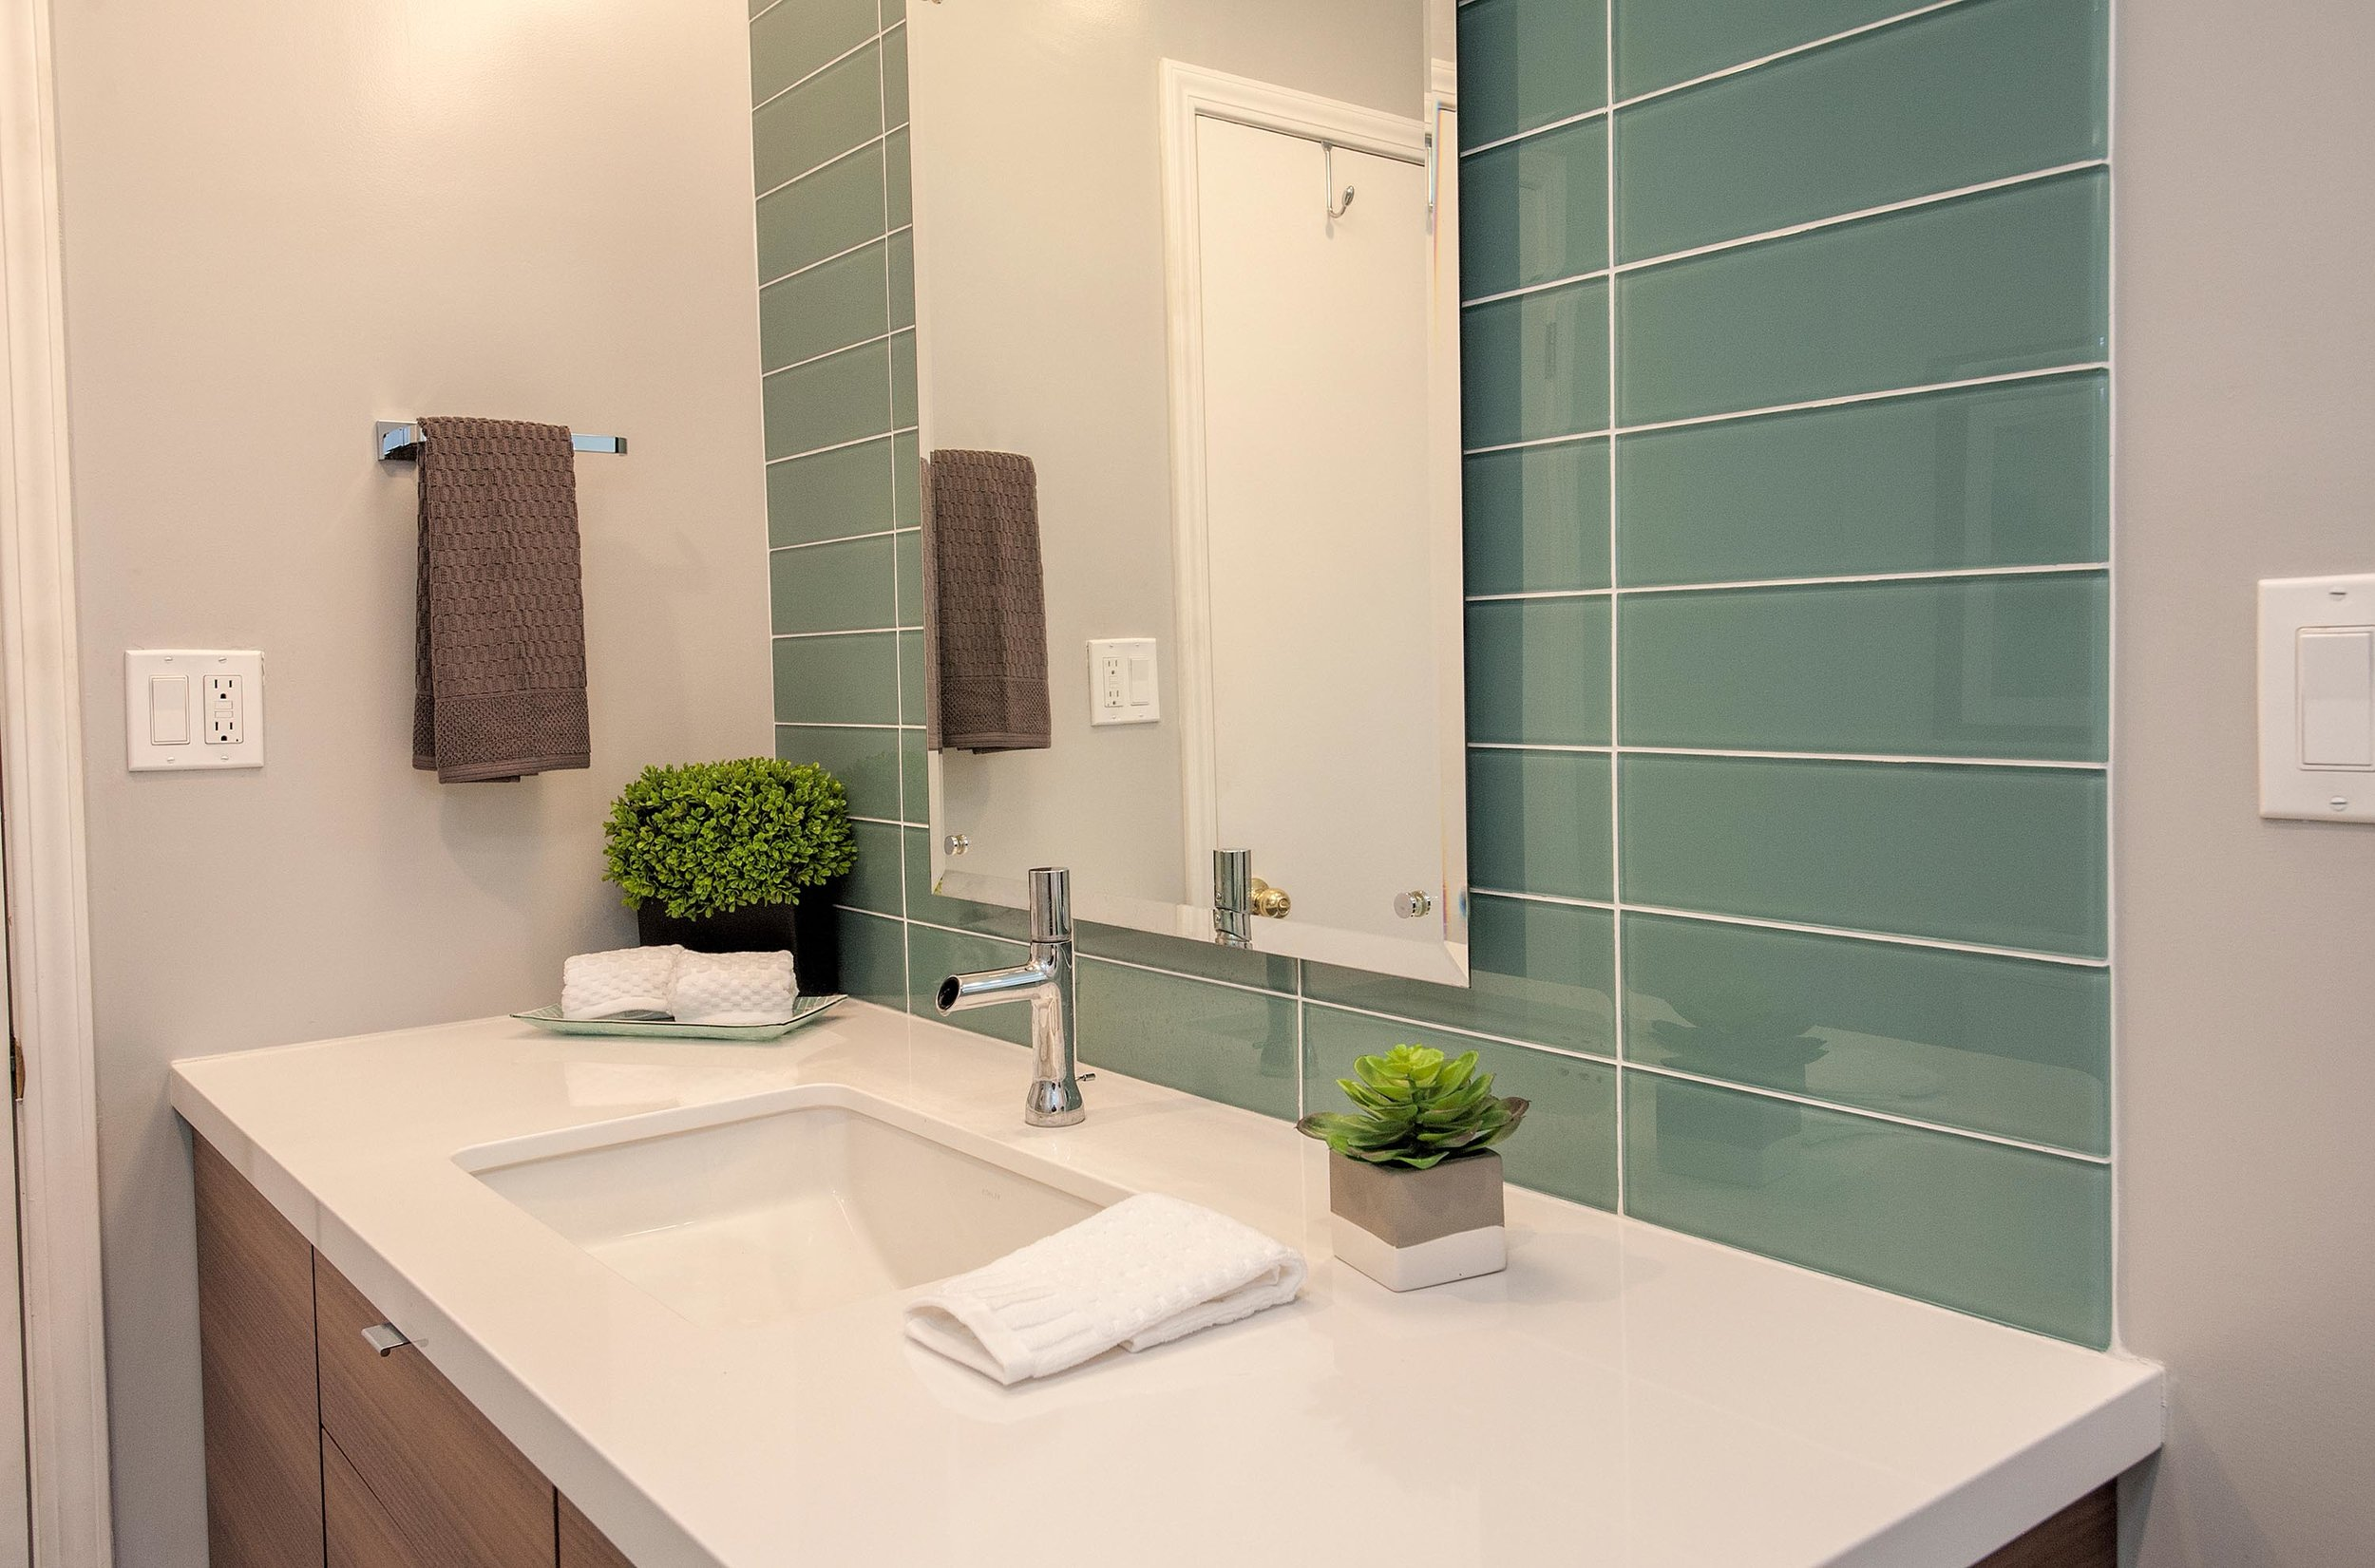 Stylish bathroom with custom cabinet and a faucet